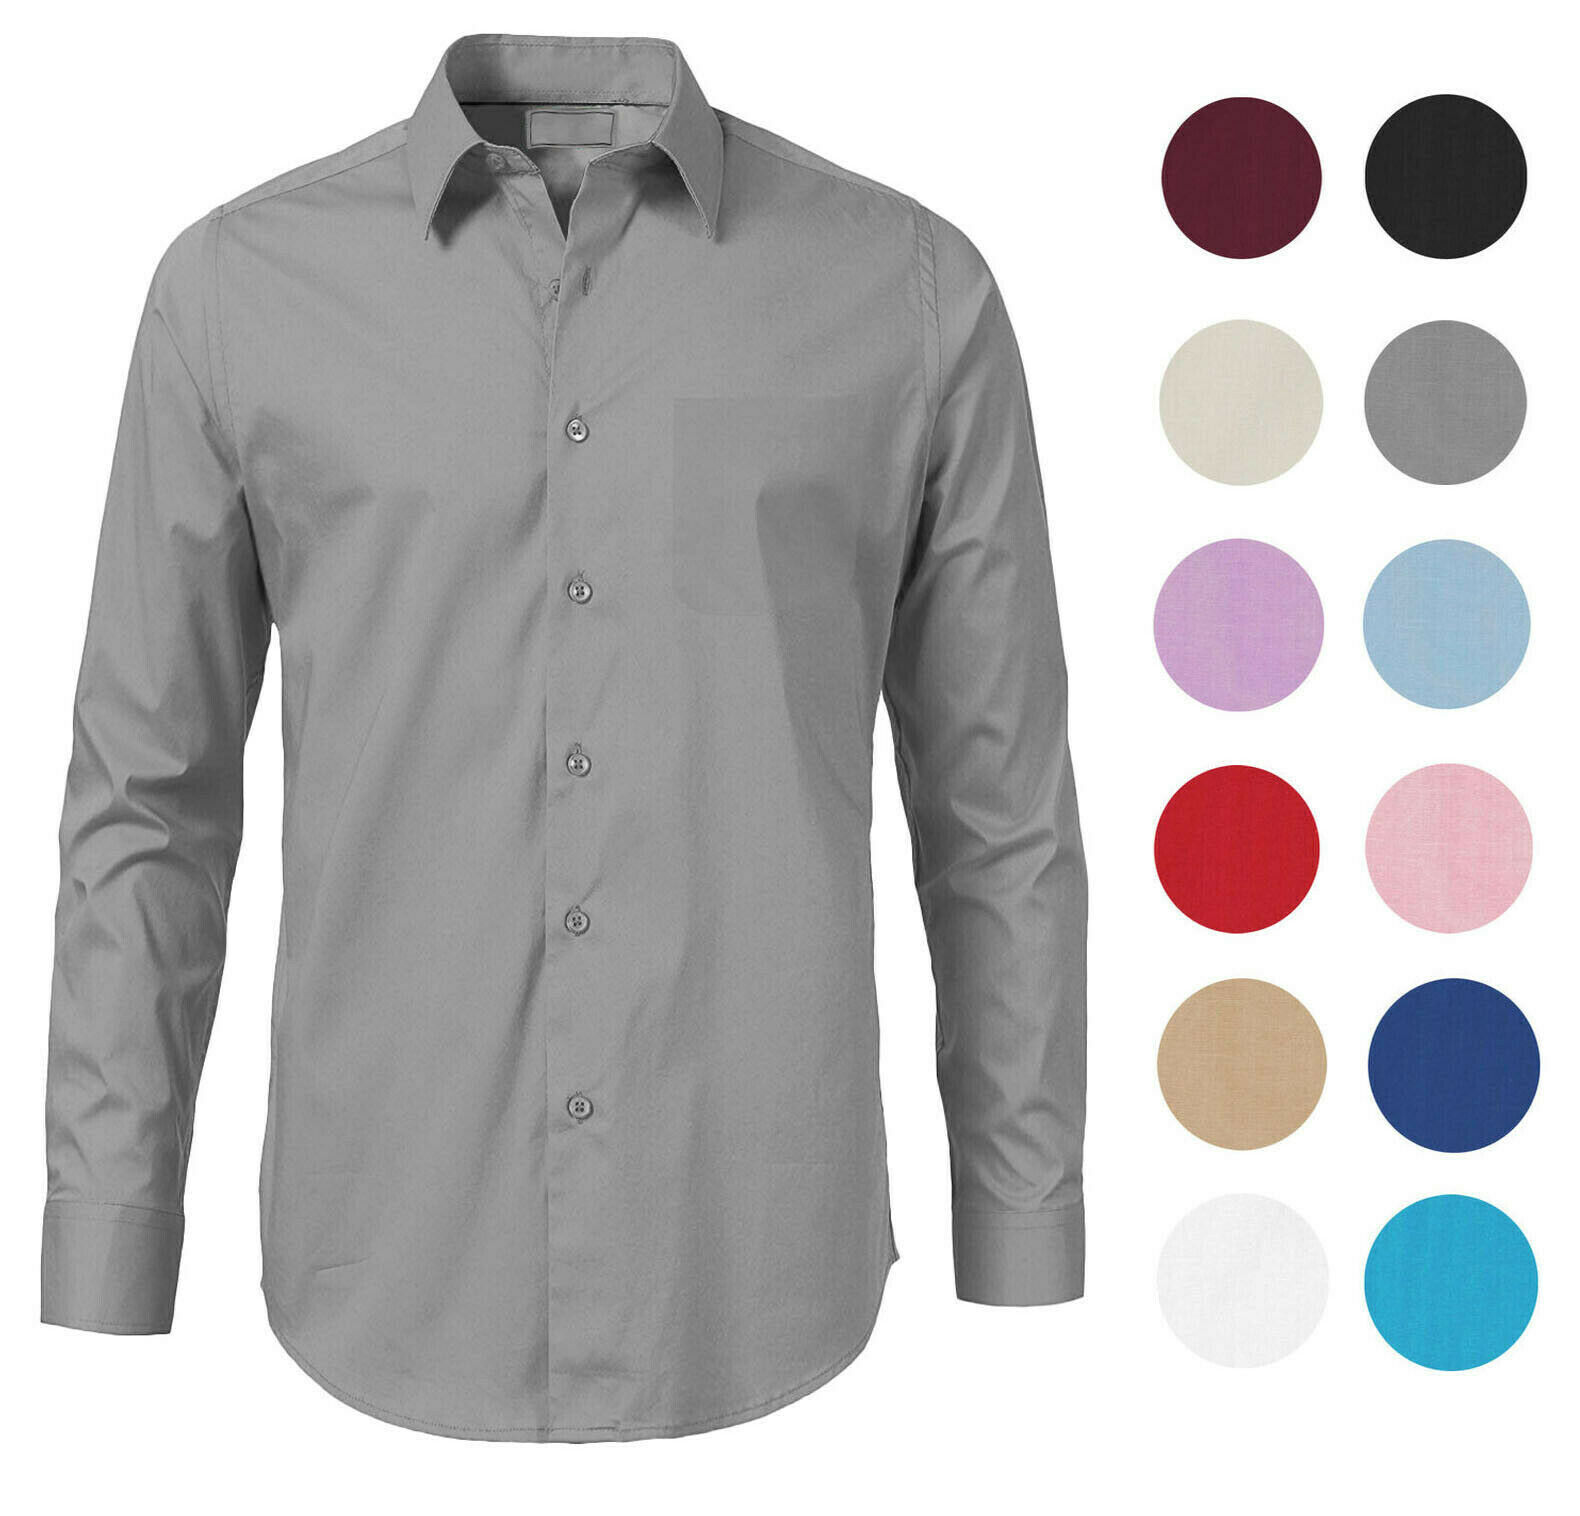 Men's Solid Long Sleeve Formal Button Up French Convertible